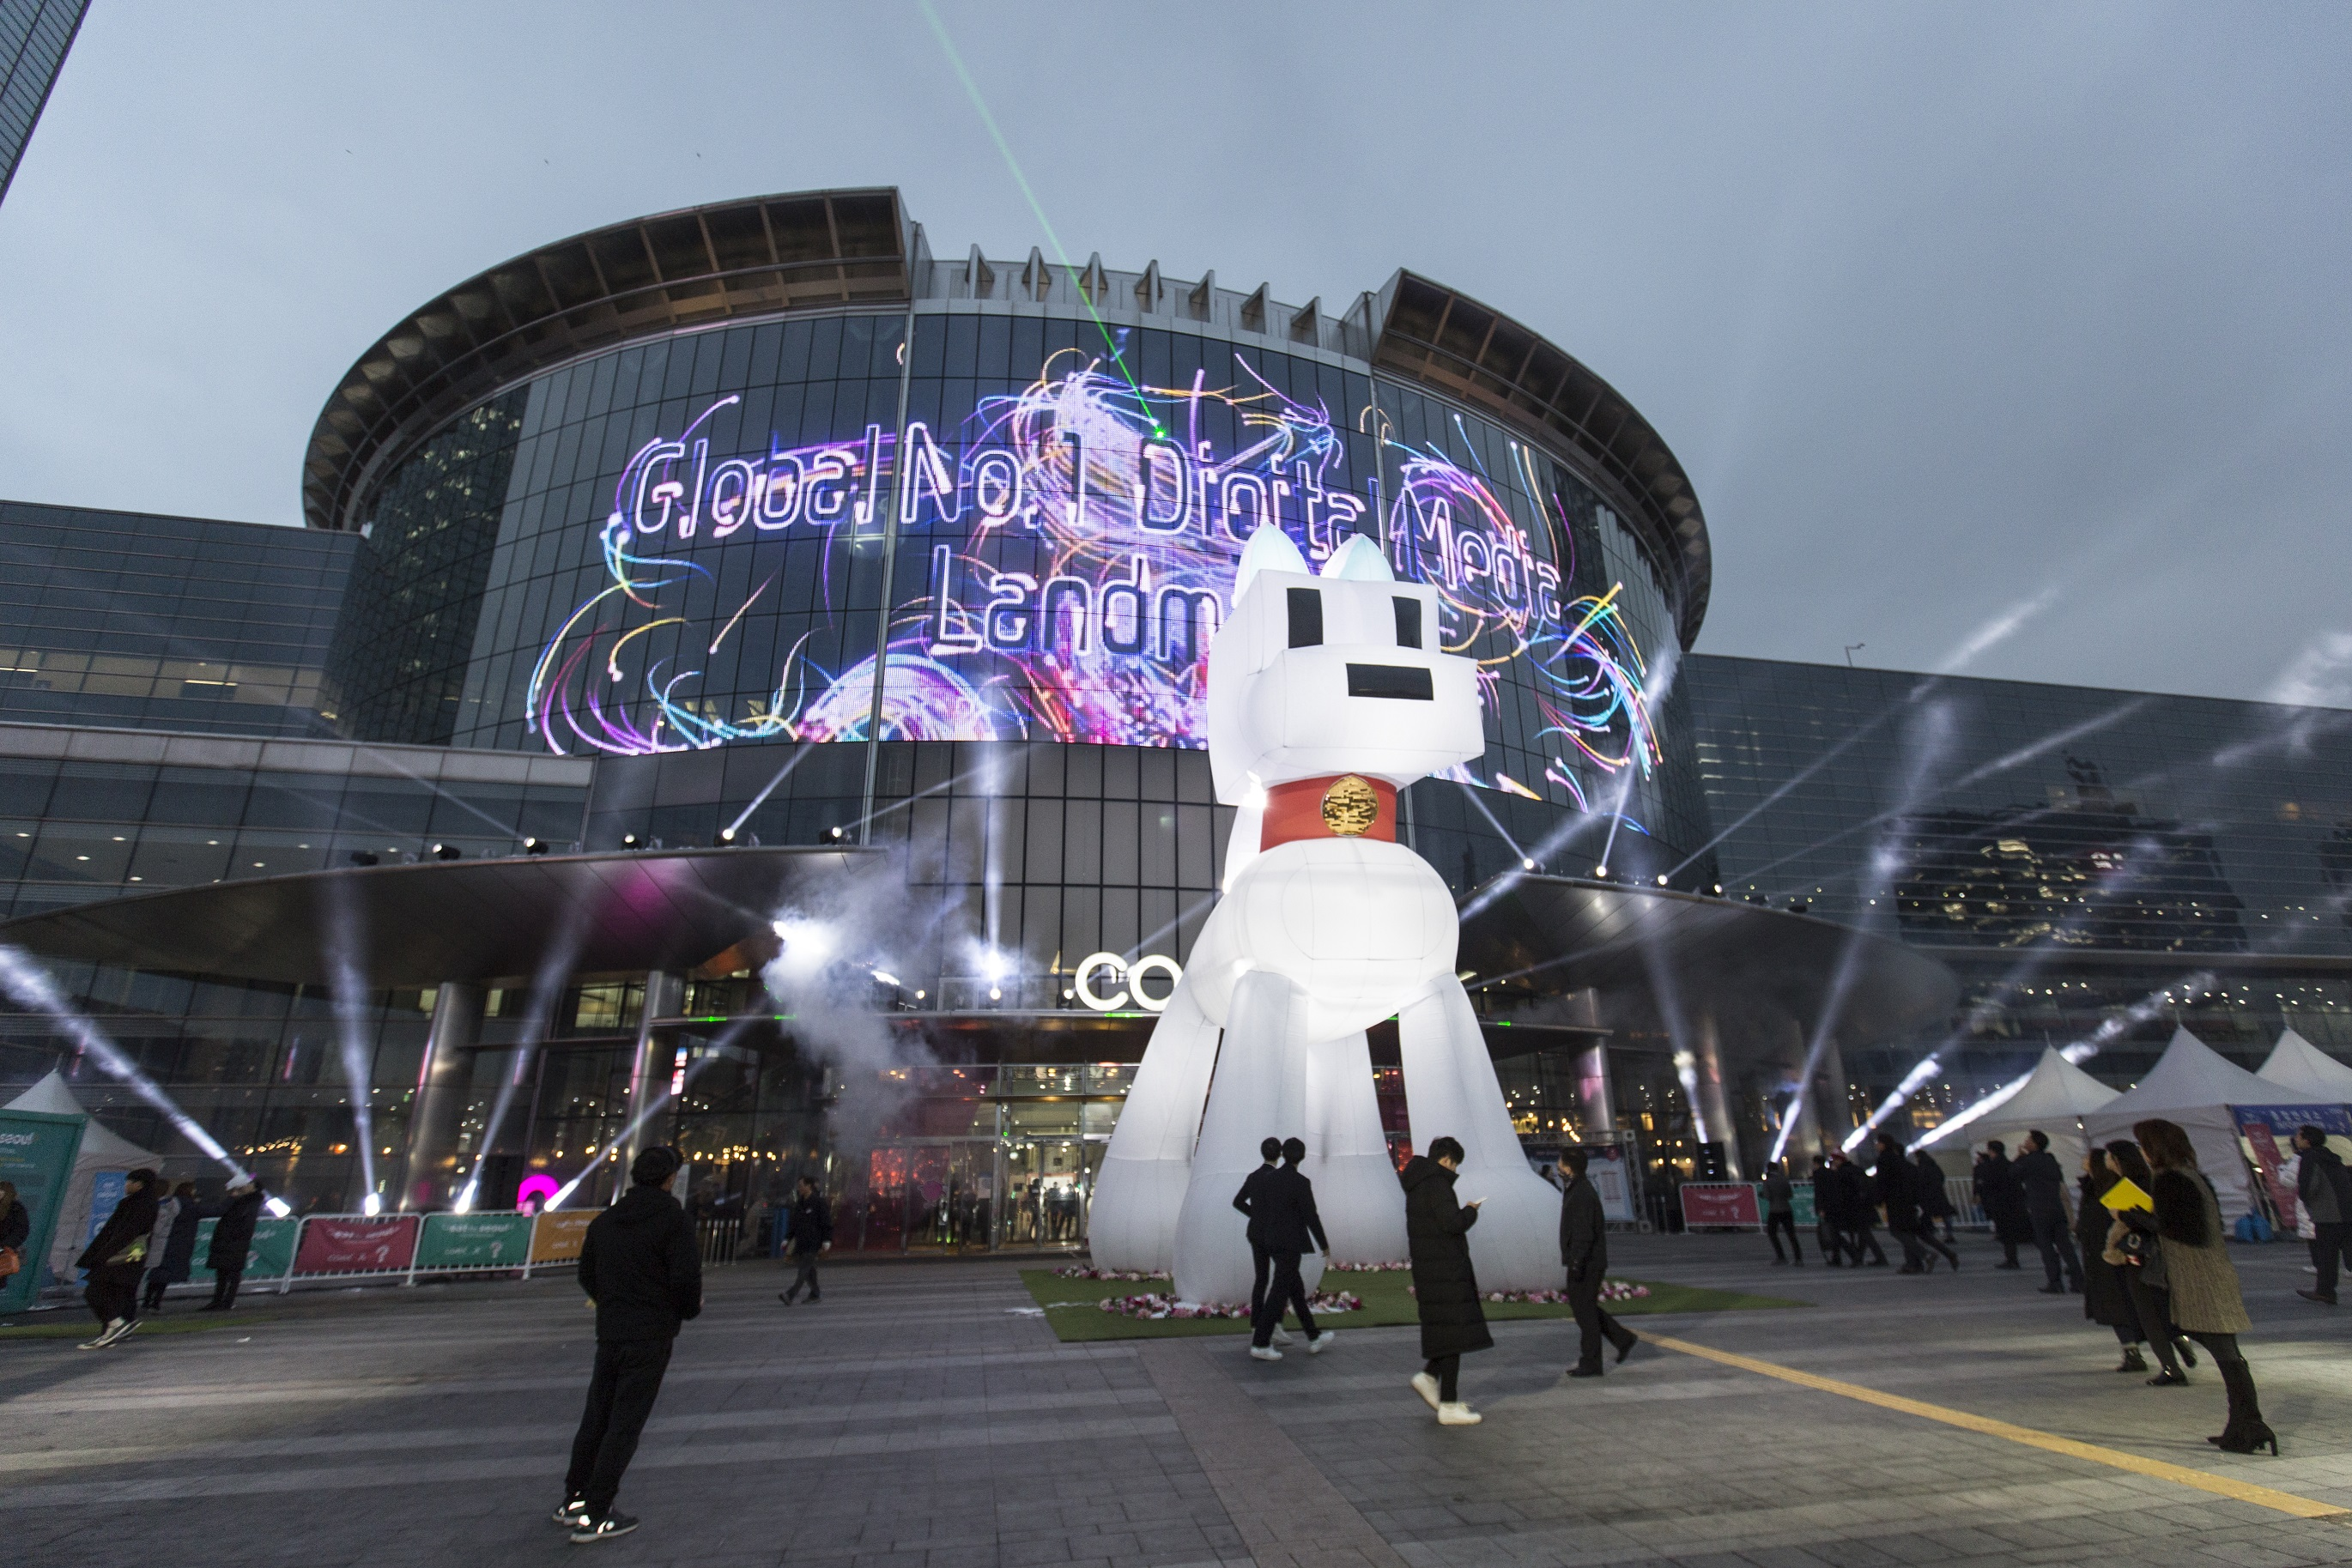 Architectural-grade LED glass, GLAAM Media Glass featured at the COEX Convention Center, Seoul, South Korea